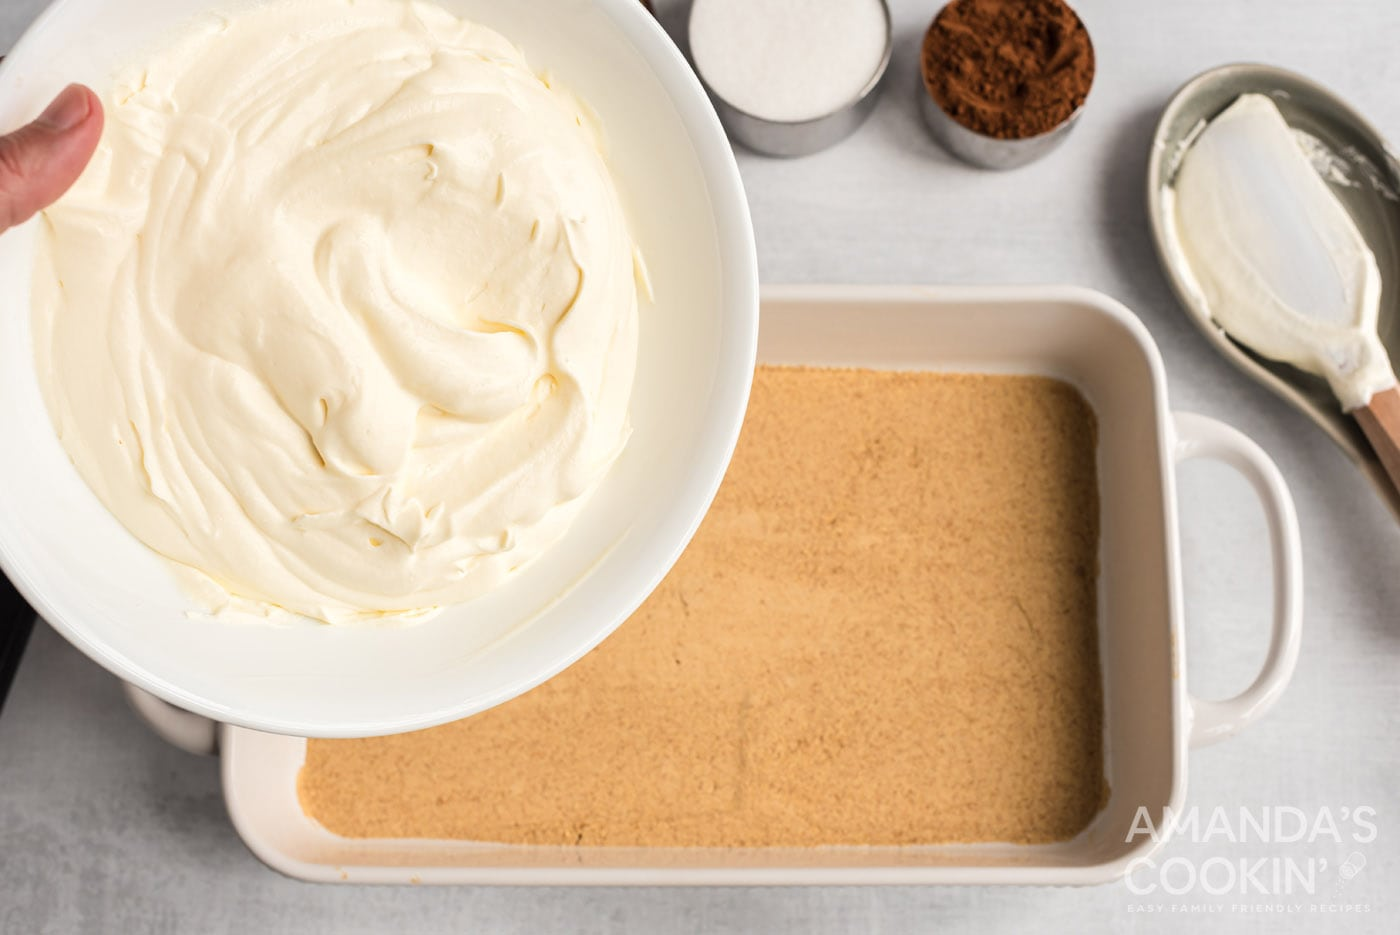 pour pudding mixture over the top of the graham cracker layer